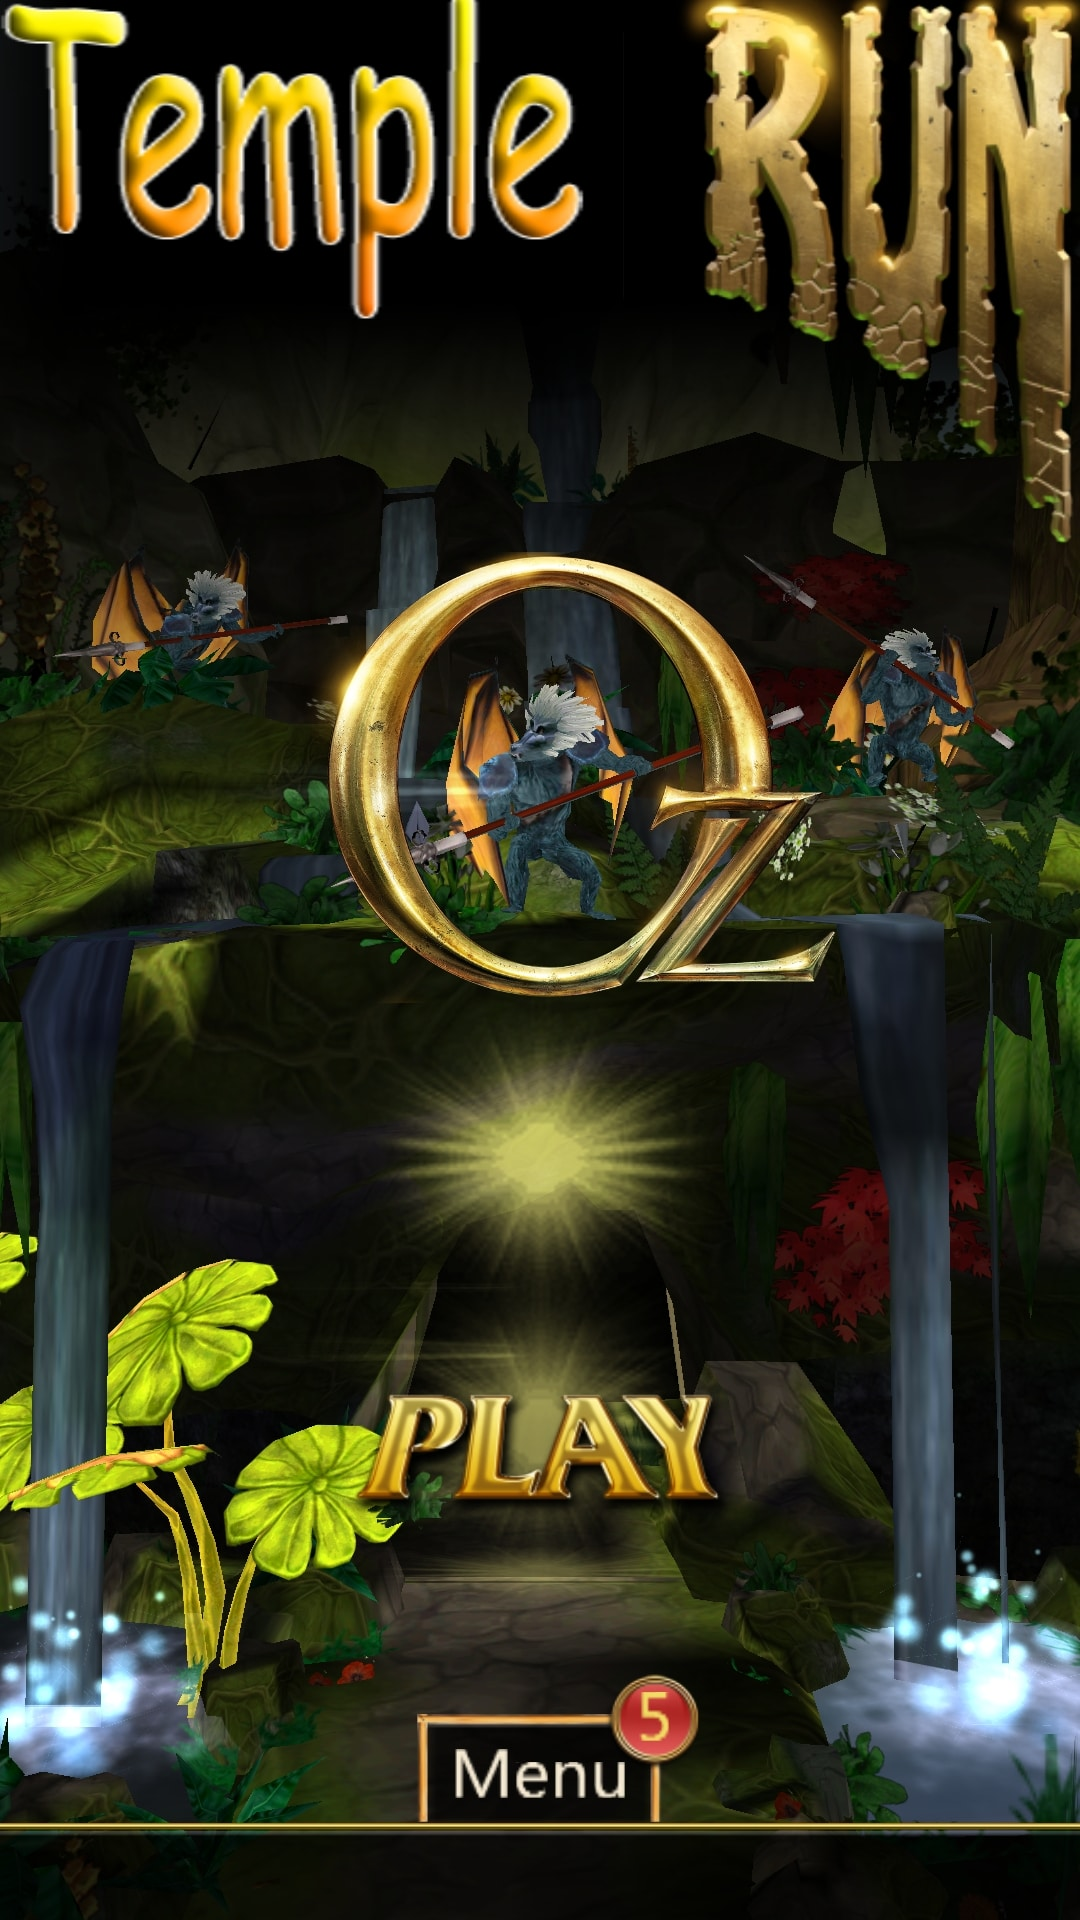 Download Endless Run Lost Oz APK - For Android 11